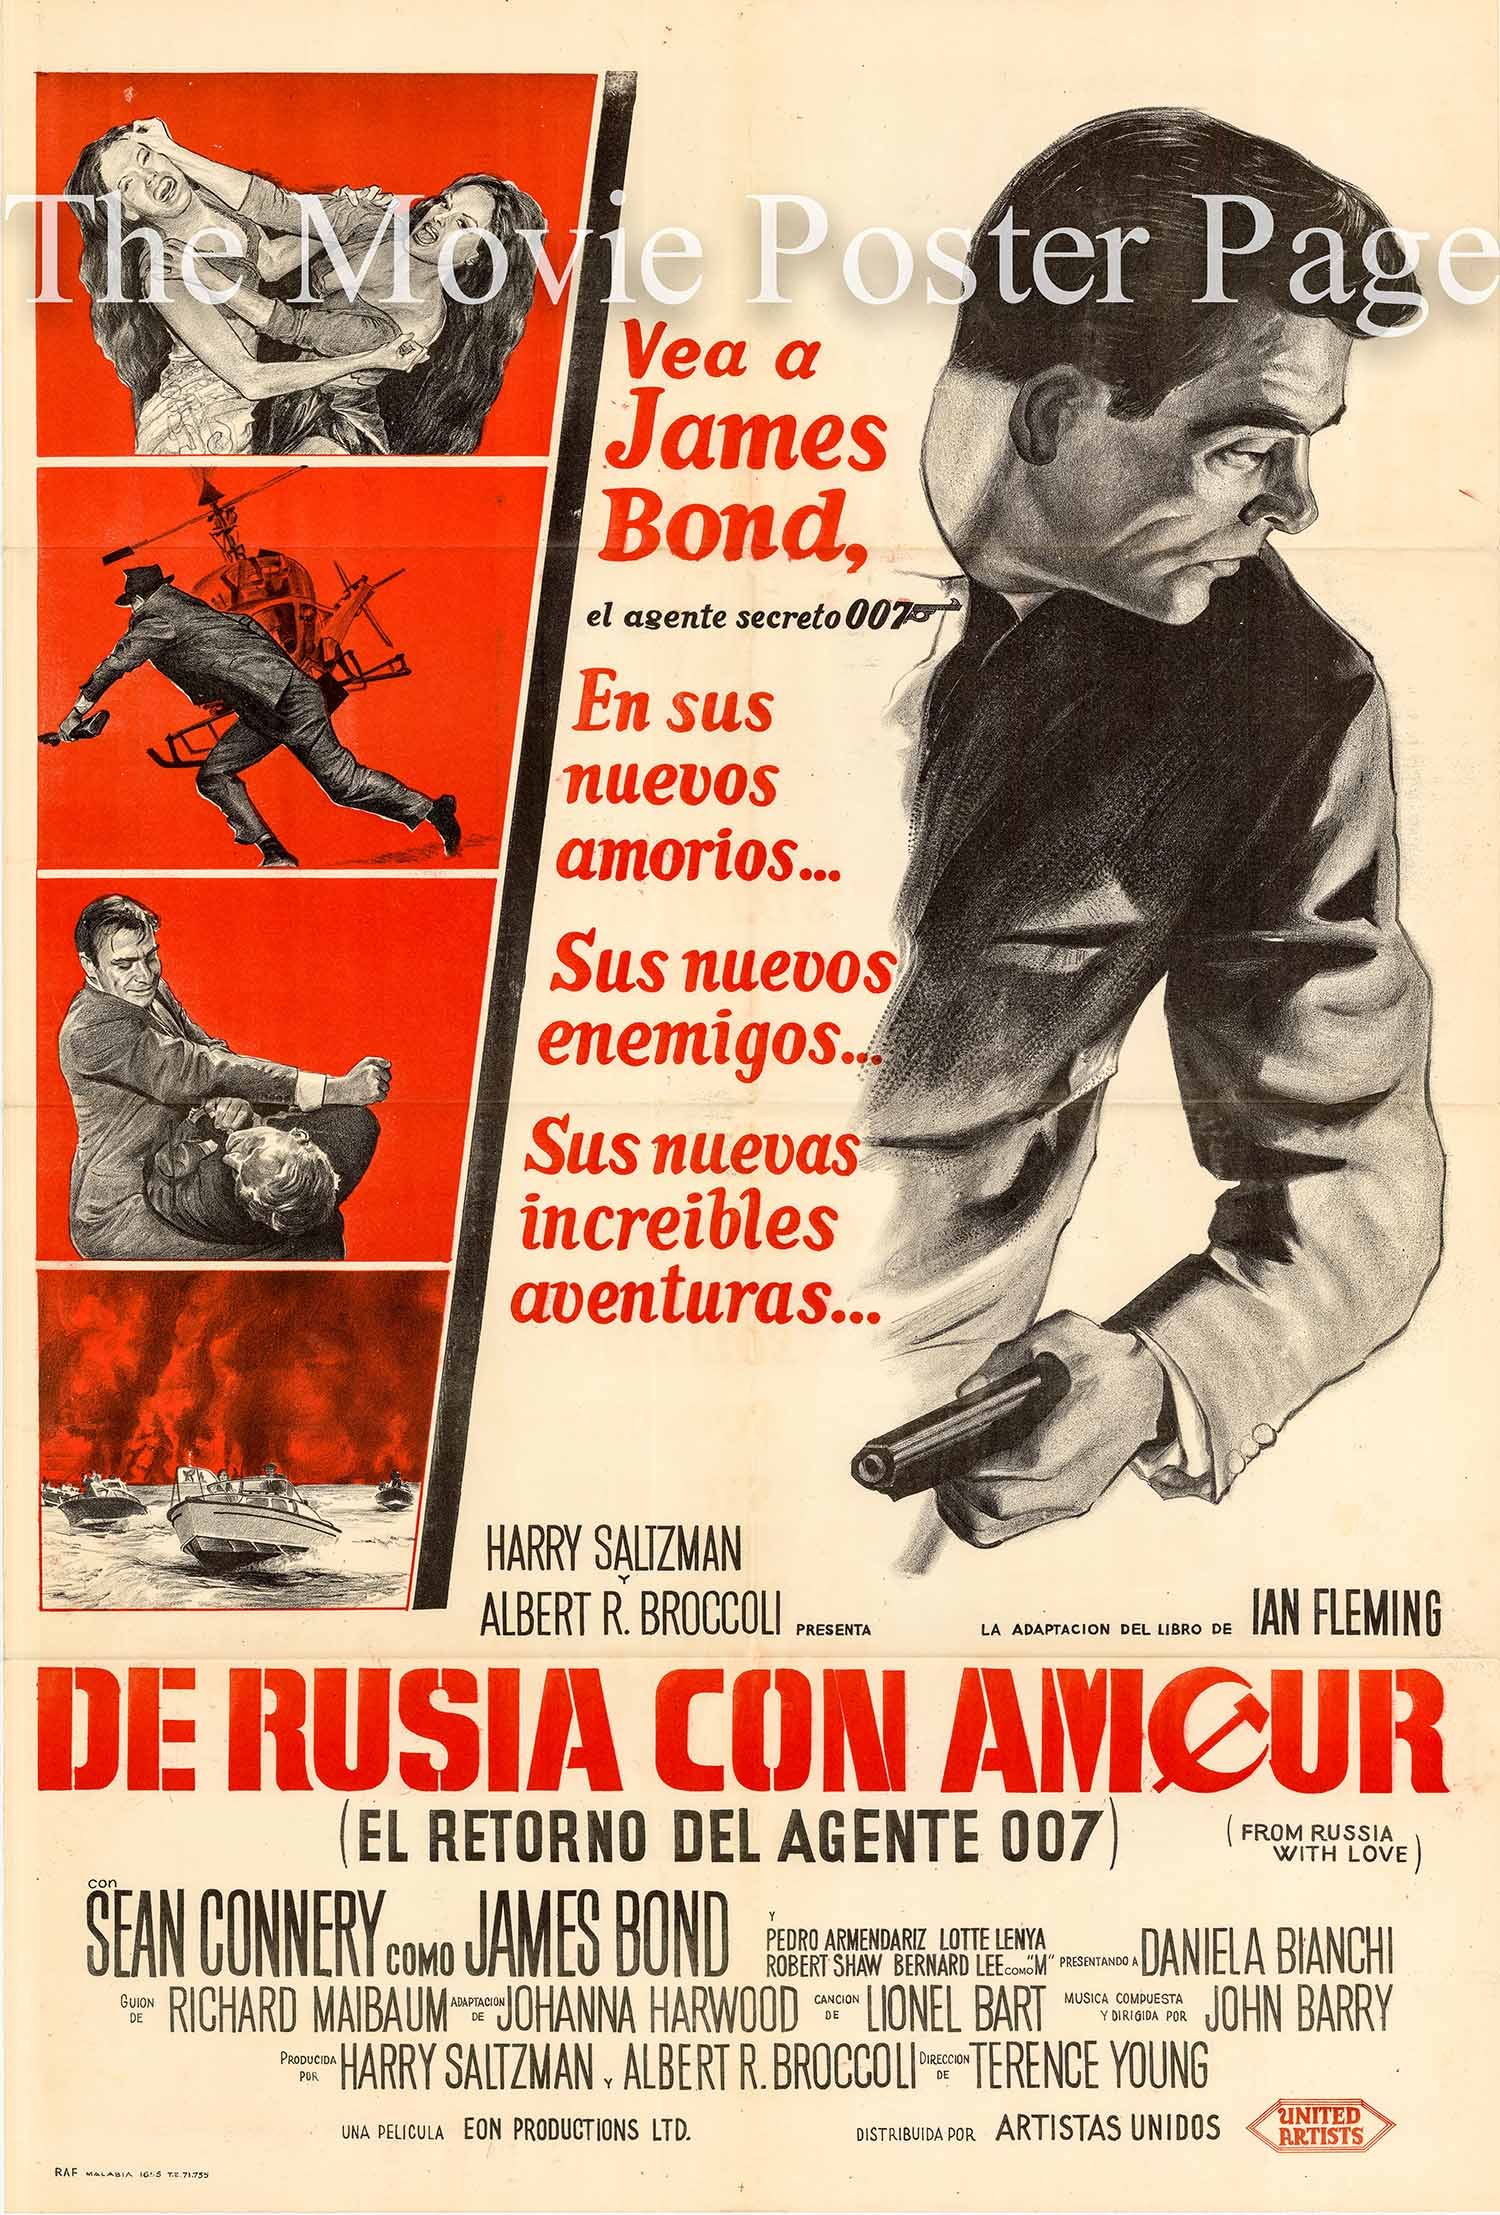 Pictured is an Argentine promotional poster for the 1963 Terence Young film From Russia with Love starring Sean Connery as James Bond.